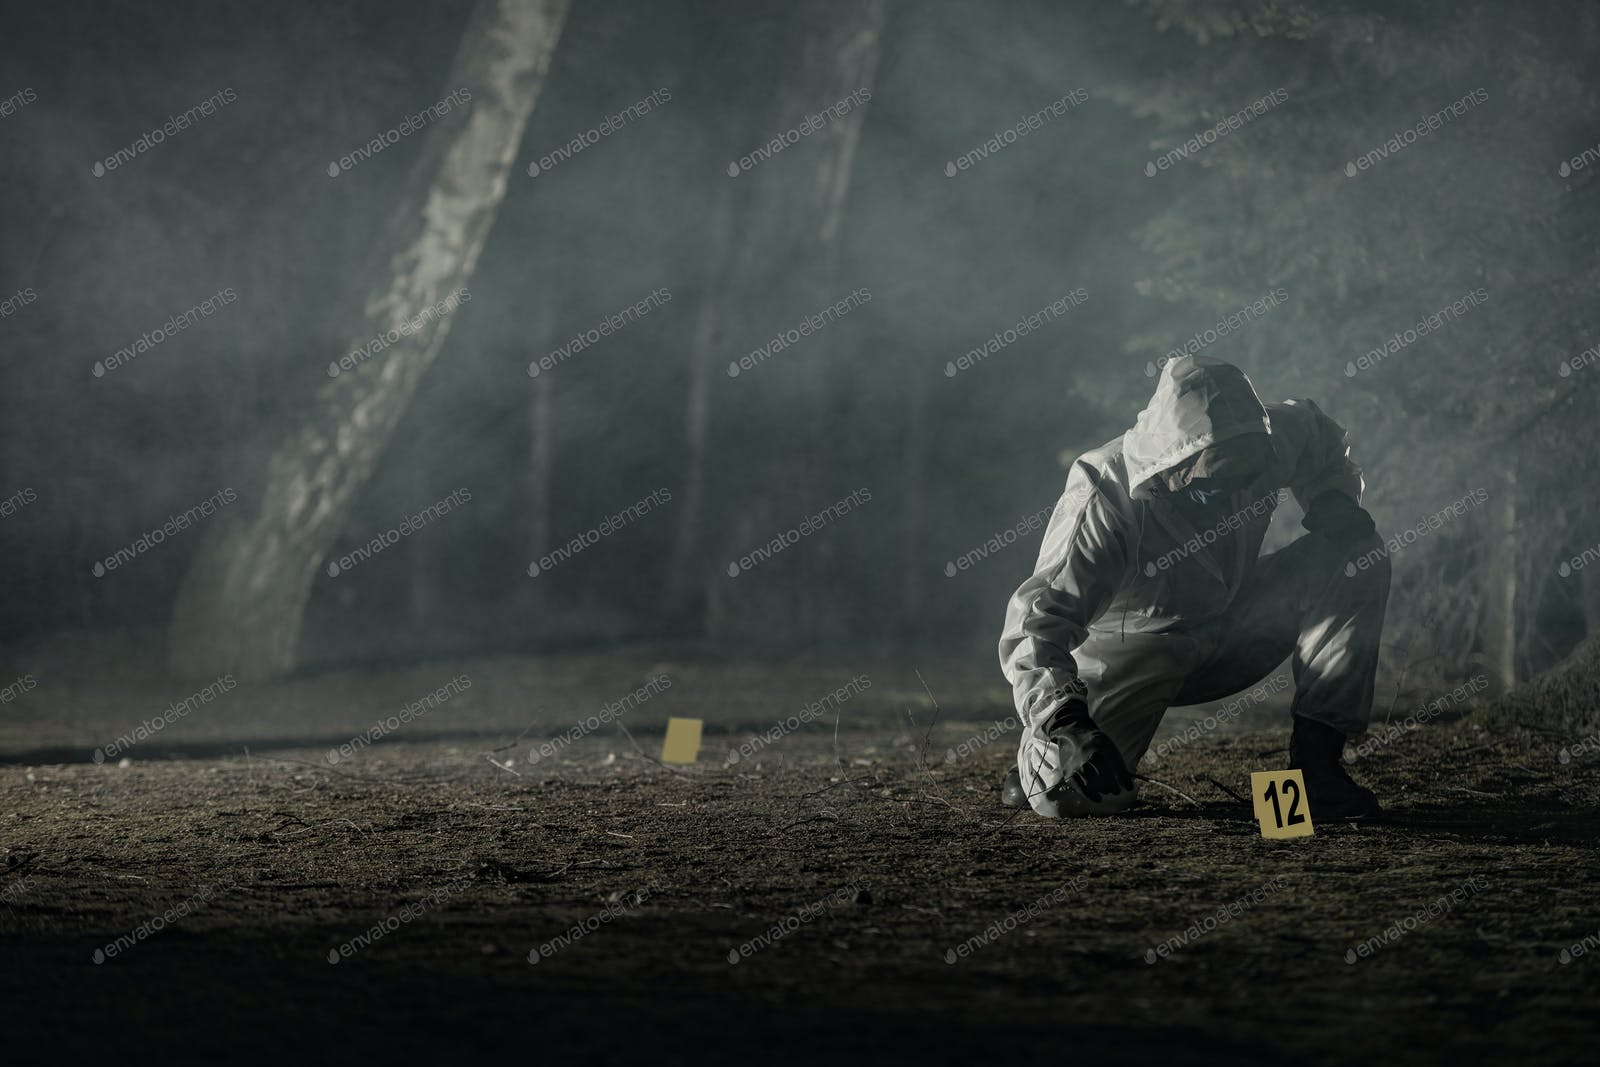 Crime Evidence Markers Placing By Forensic Officer Photo By Duallogic On Envato Elements